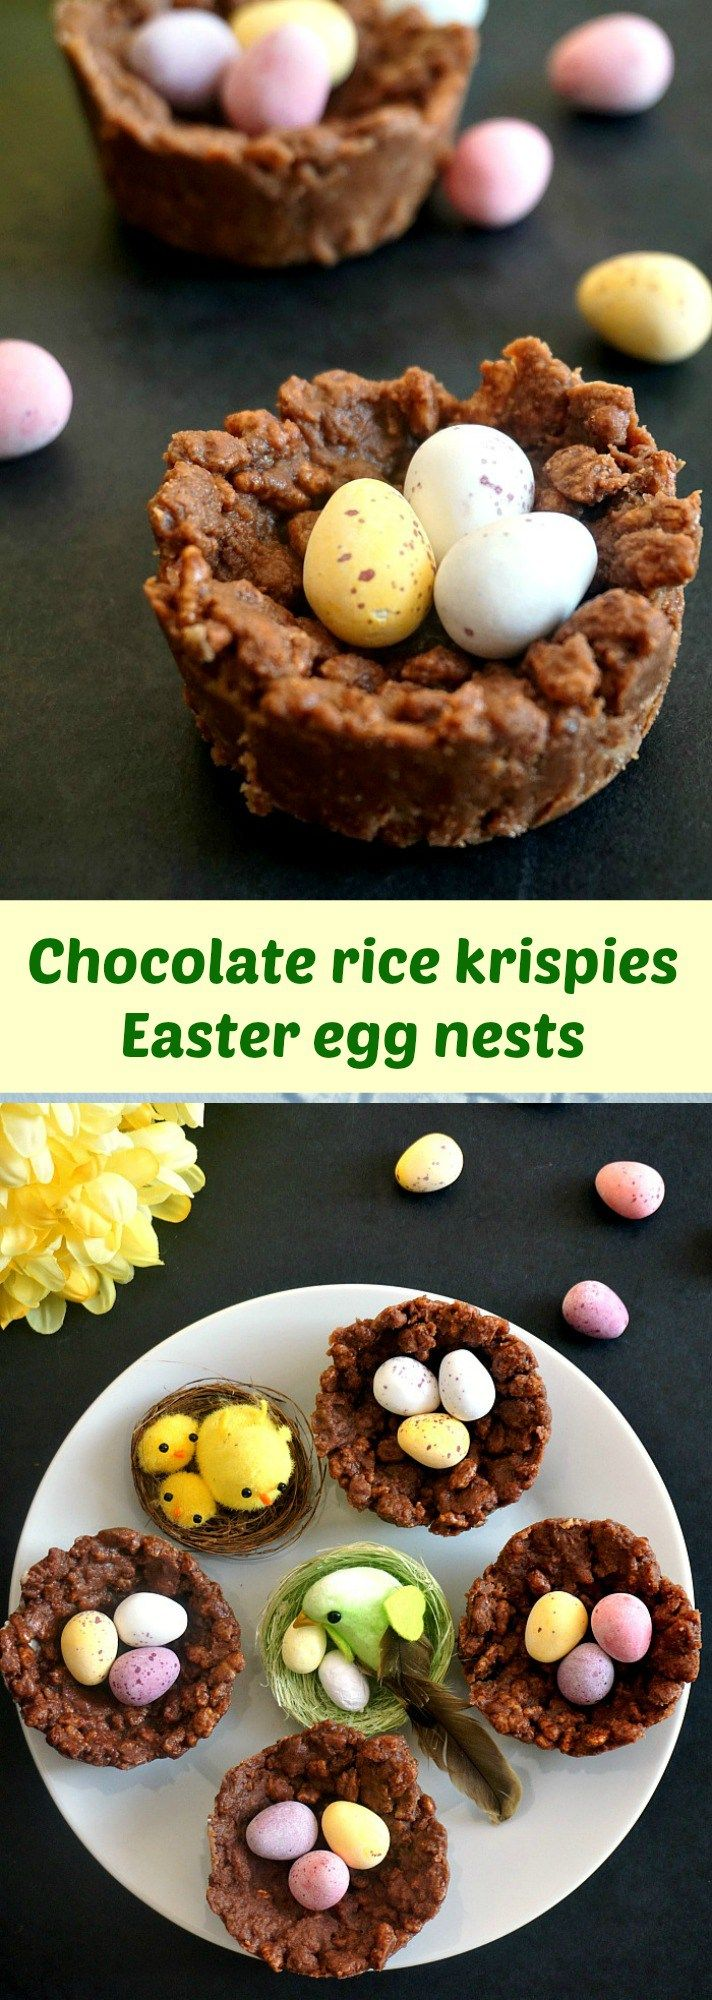 Chocolate rice krispie Easter egg nests, the sweetest Easter treat for kids.